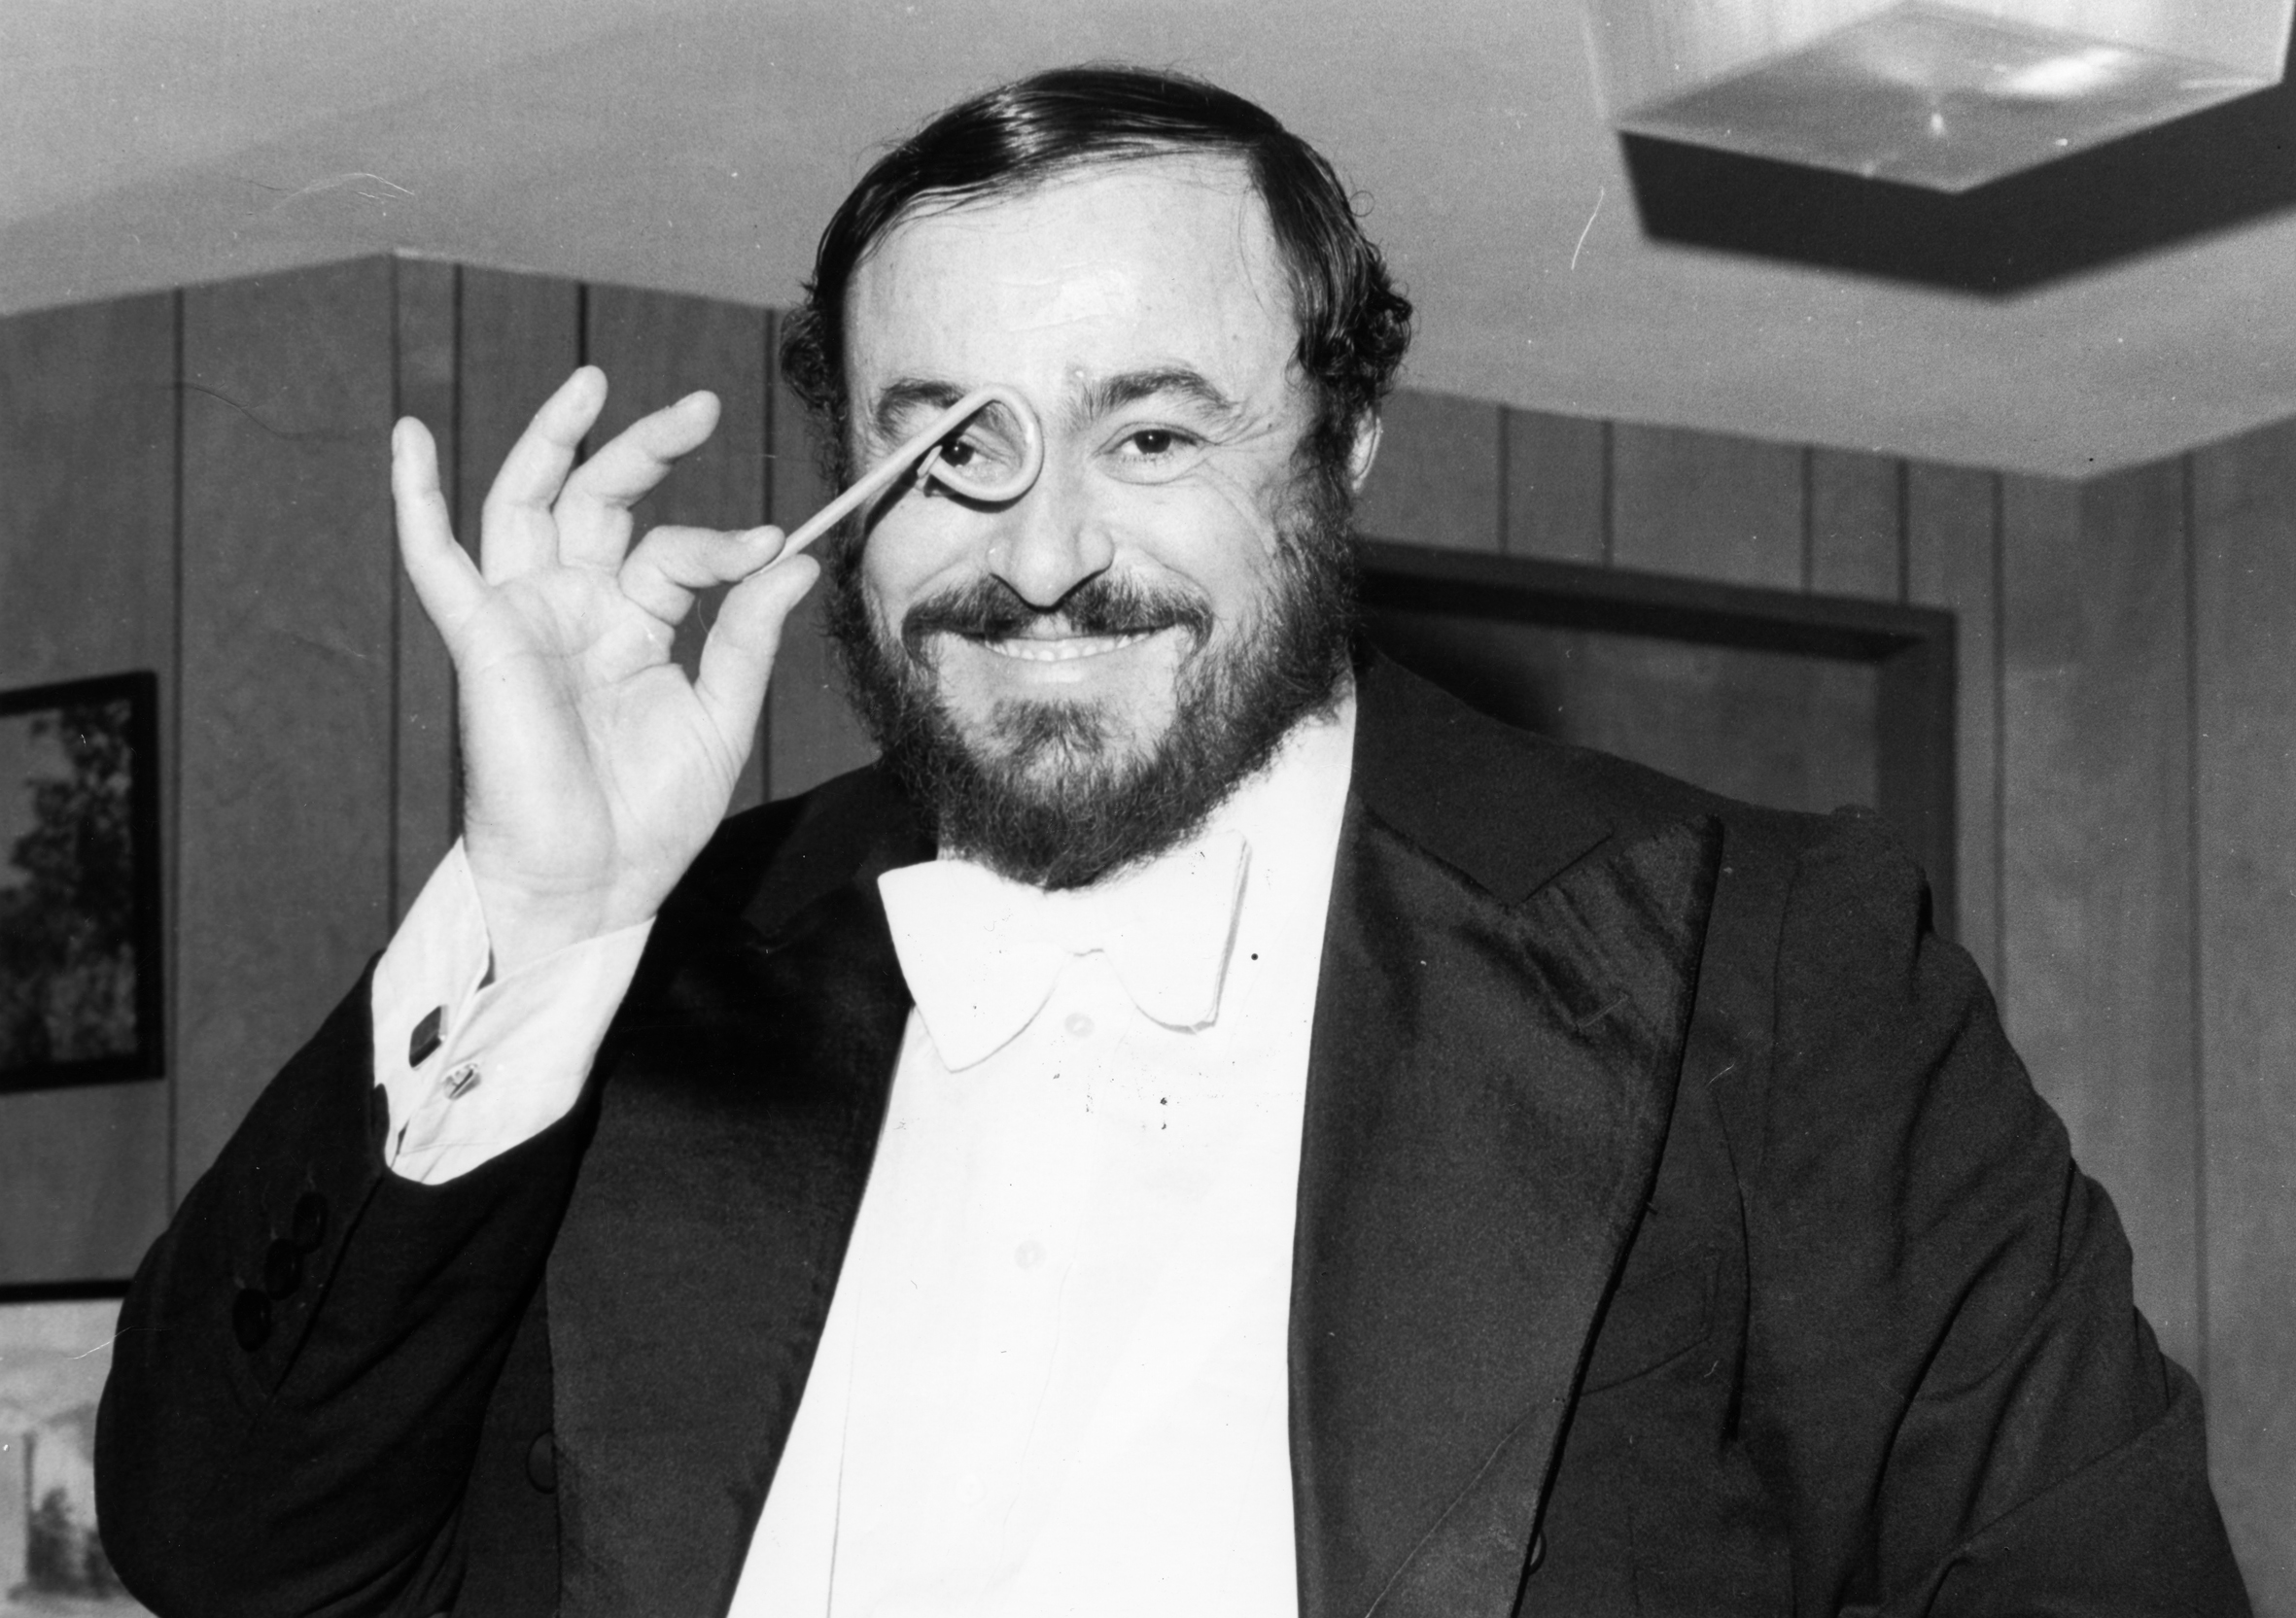 blog-post-306-happy-valentines-day-with-pavarotti.jpg